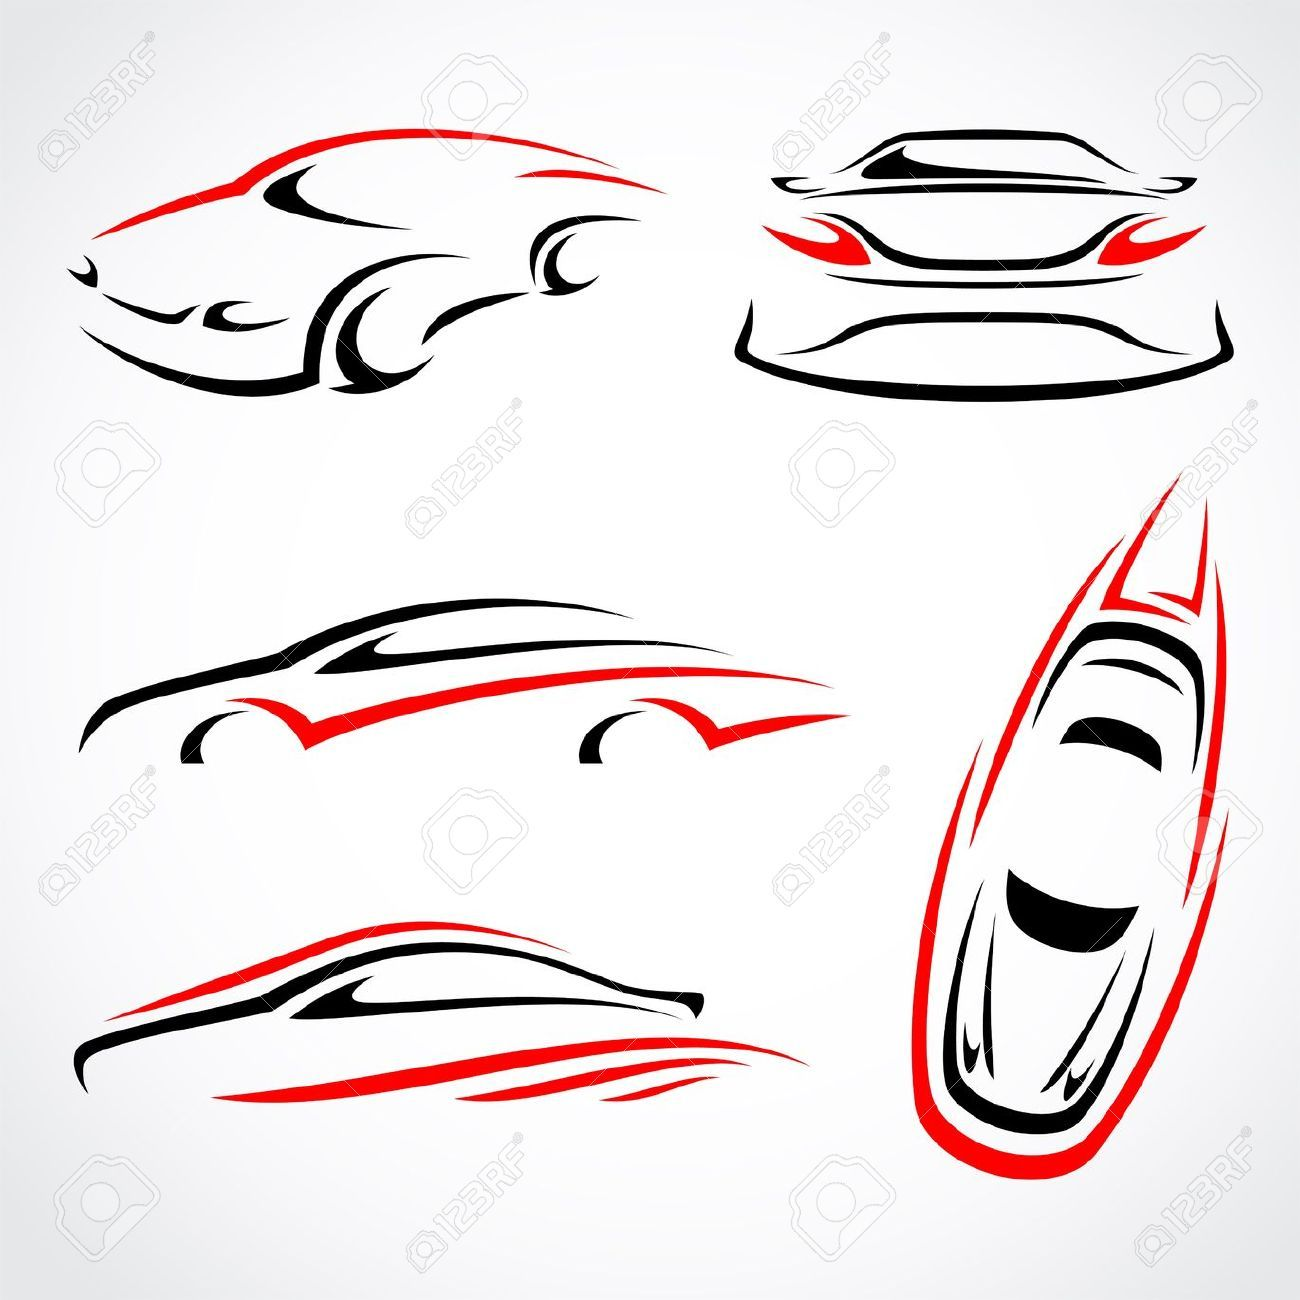 some abstract race car ideas Graphic design programs